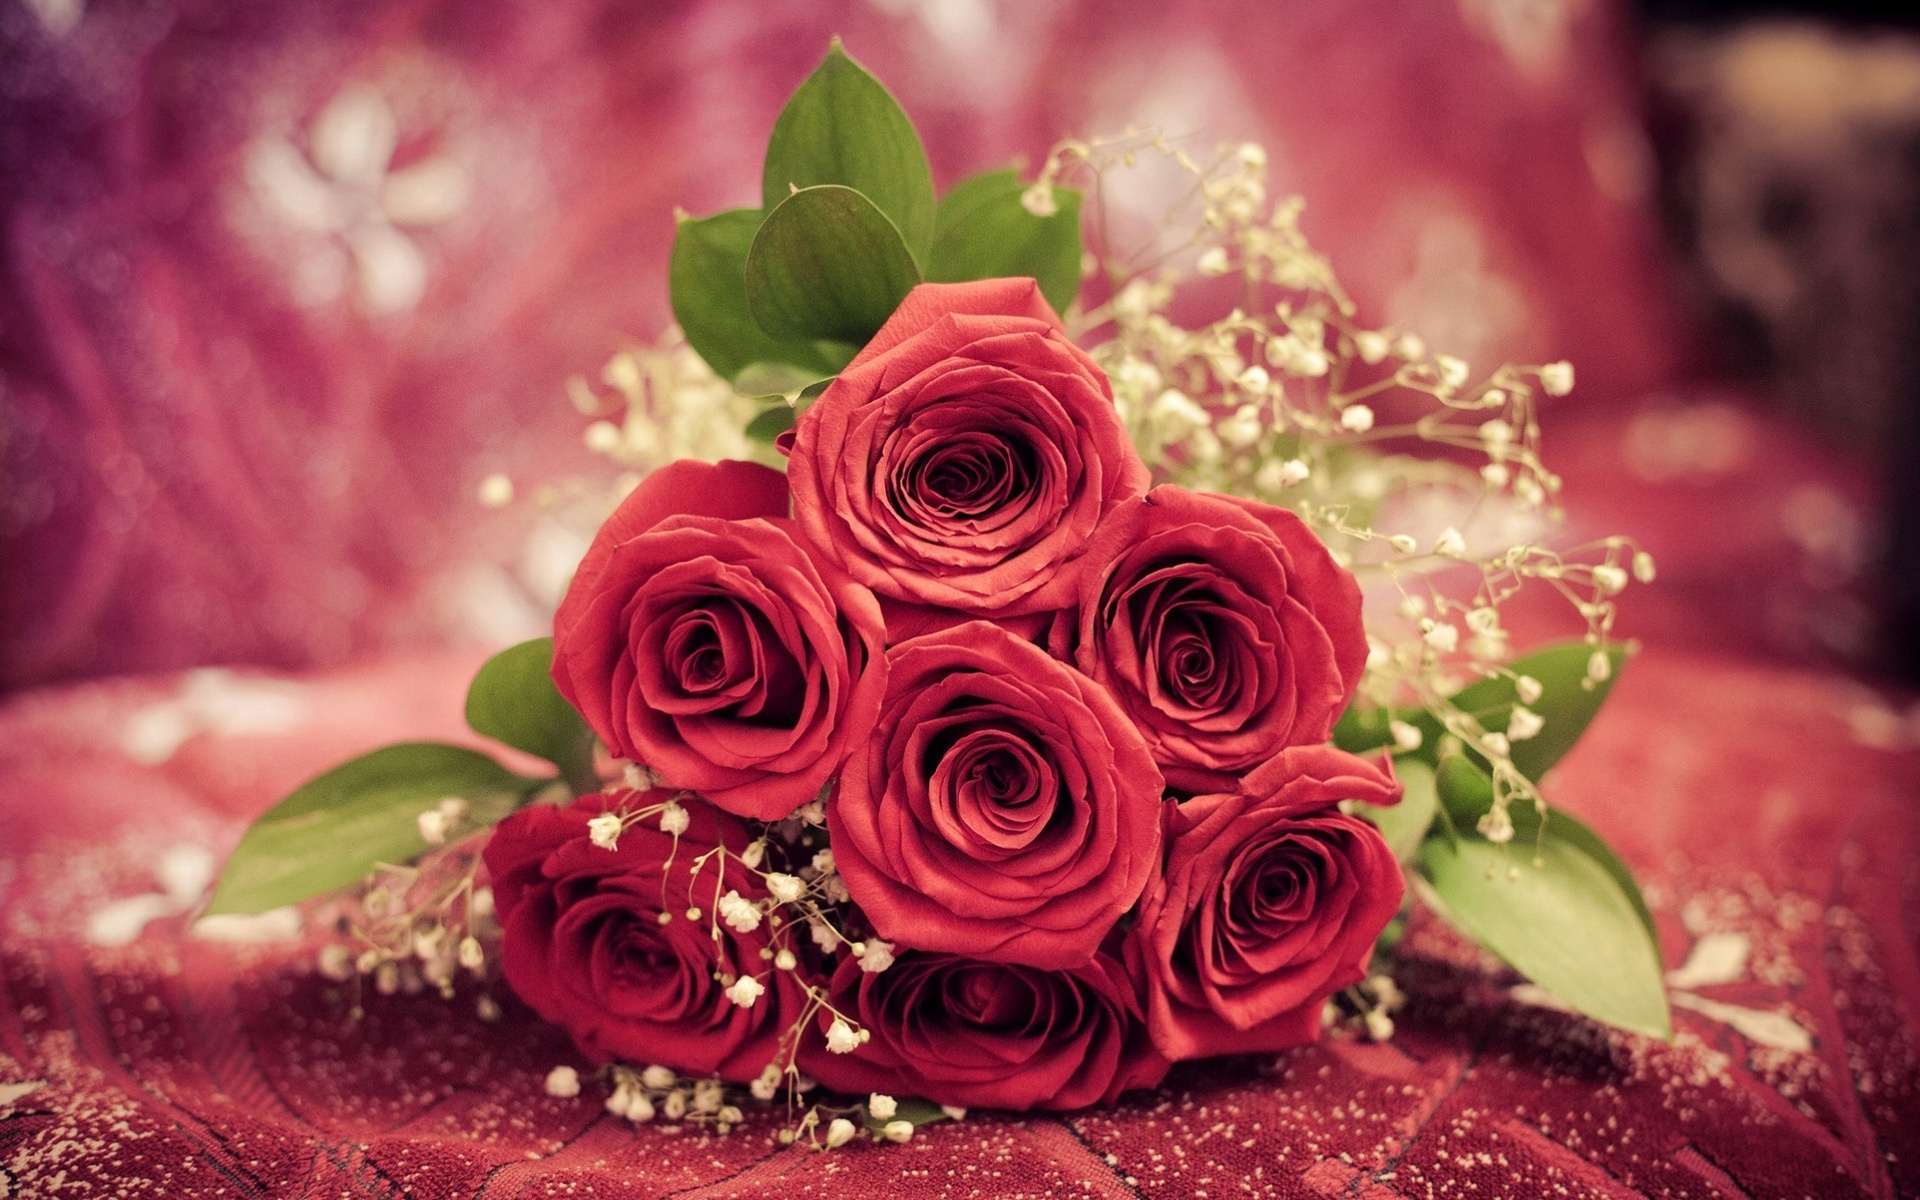 Wallpaper Red Rose Flowers Gift 1920x1200 Hd Picture Image